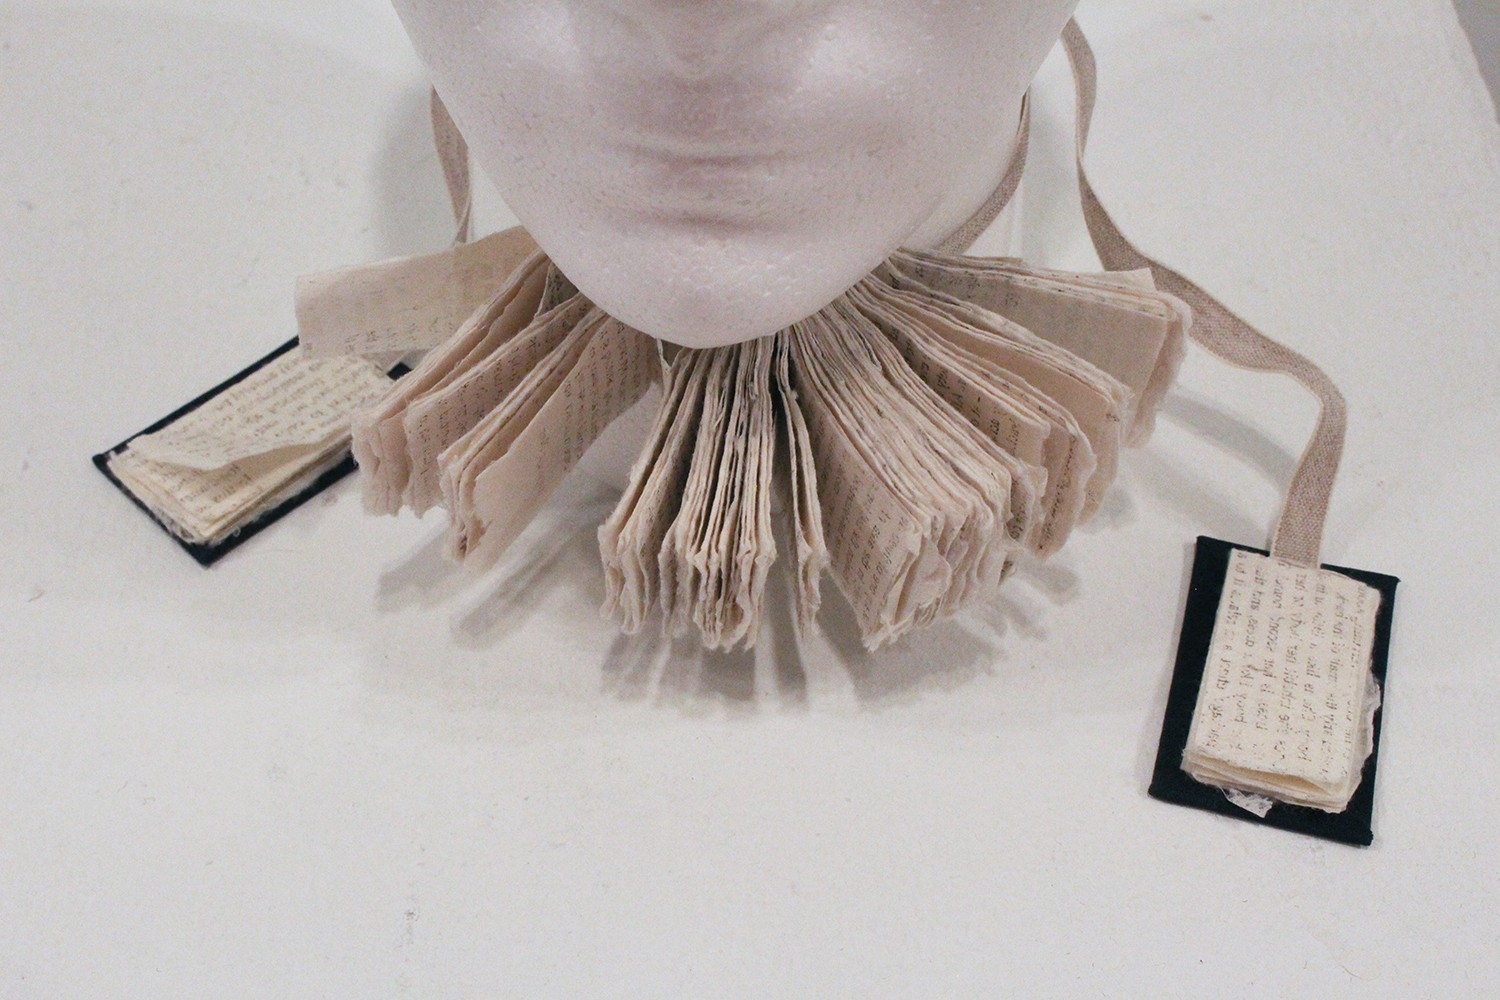 """This series begins with """"The Choker Book,"""" which explores how books and knowledge come against us. When wearing this book as a choker, the pages turn outward. In this way, instead of serving as an object with reading functions, it becomes unreadable bonda"""